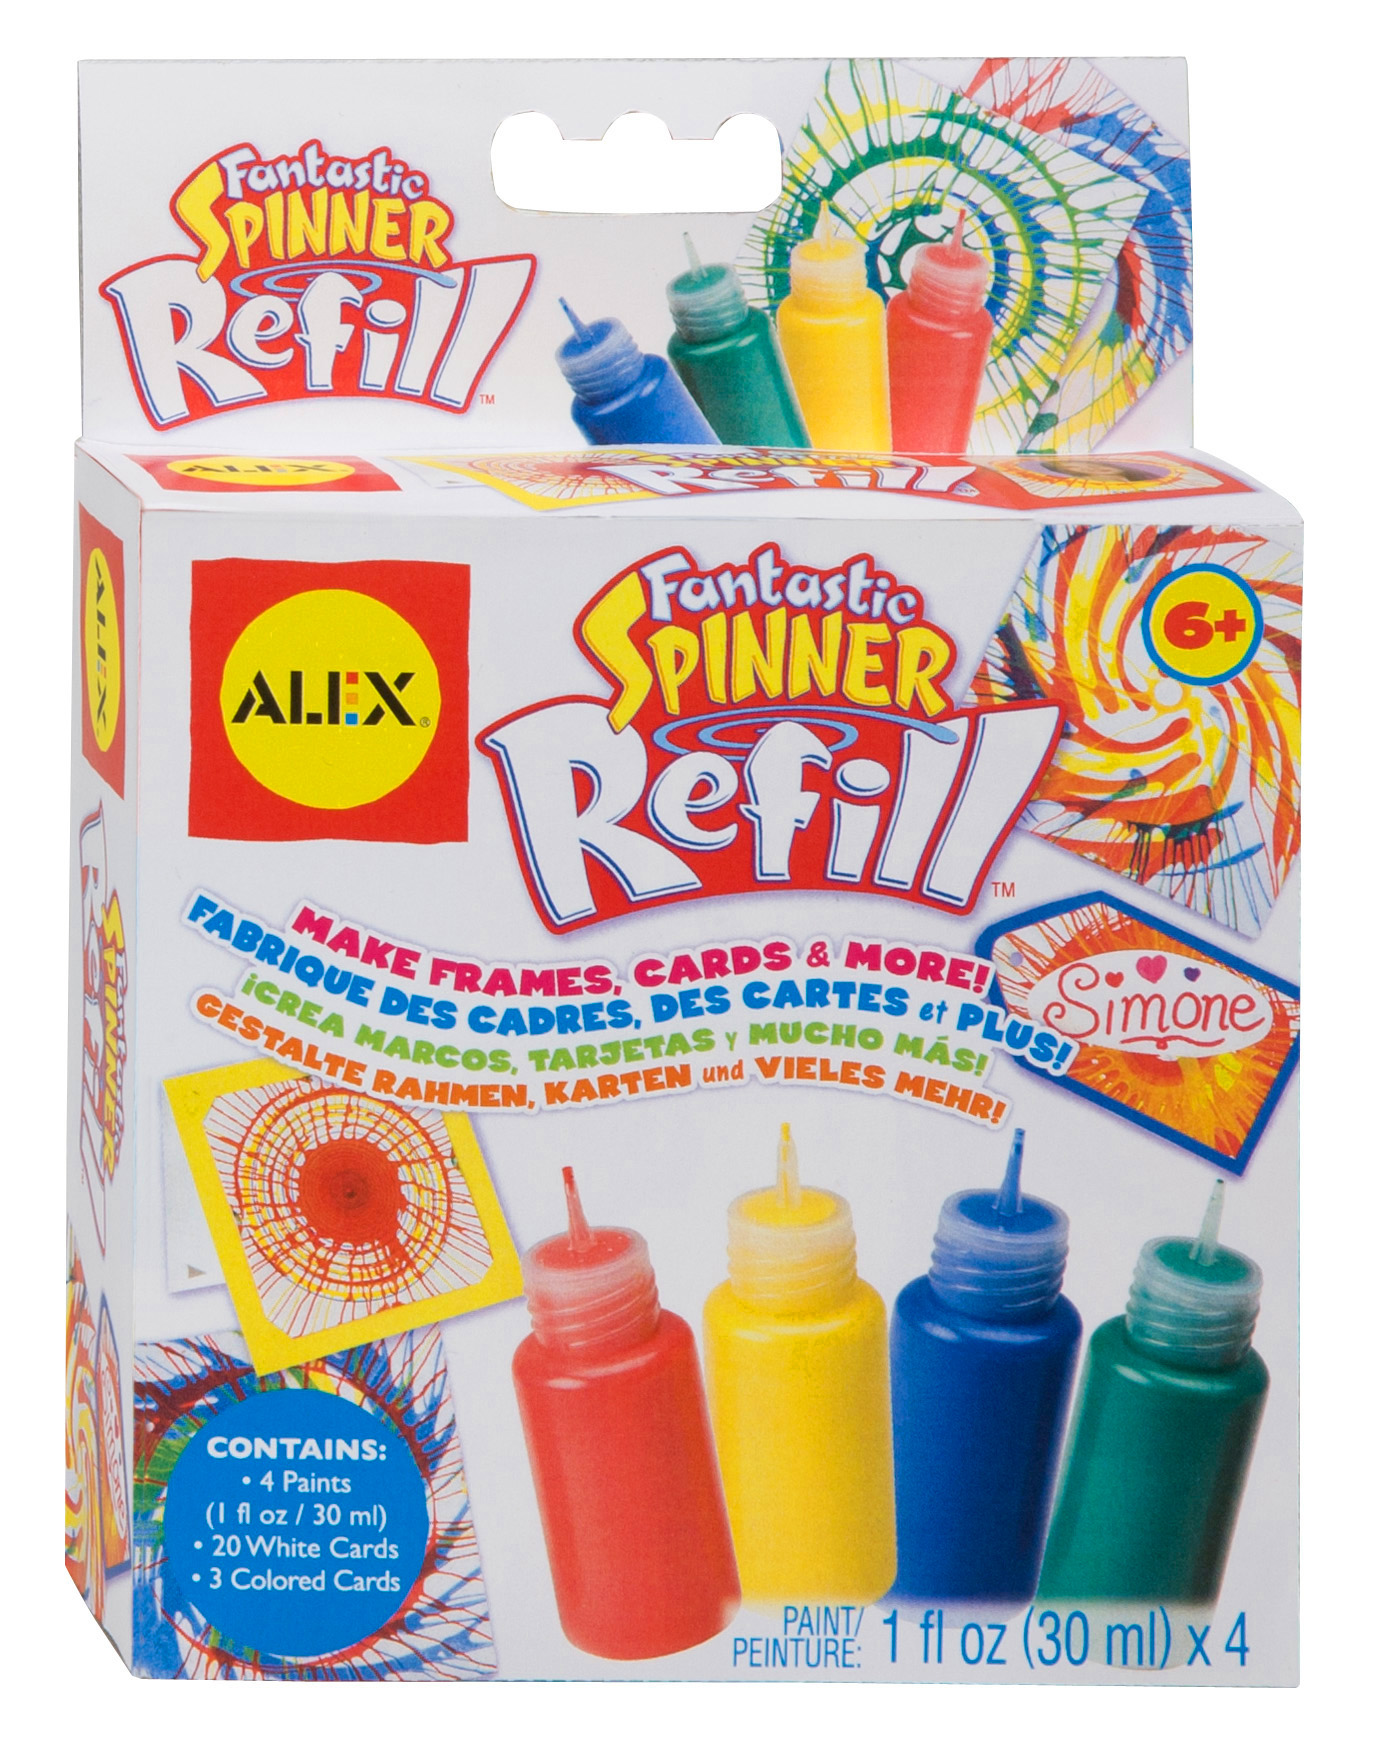 ALEX Toys Artist Studio Fantastic Spinner Refill by Alex Brands